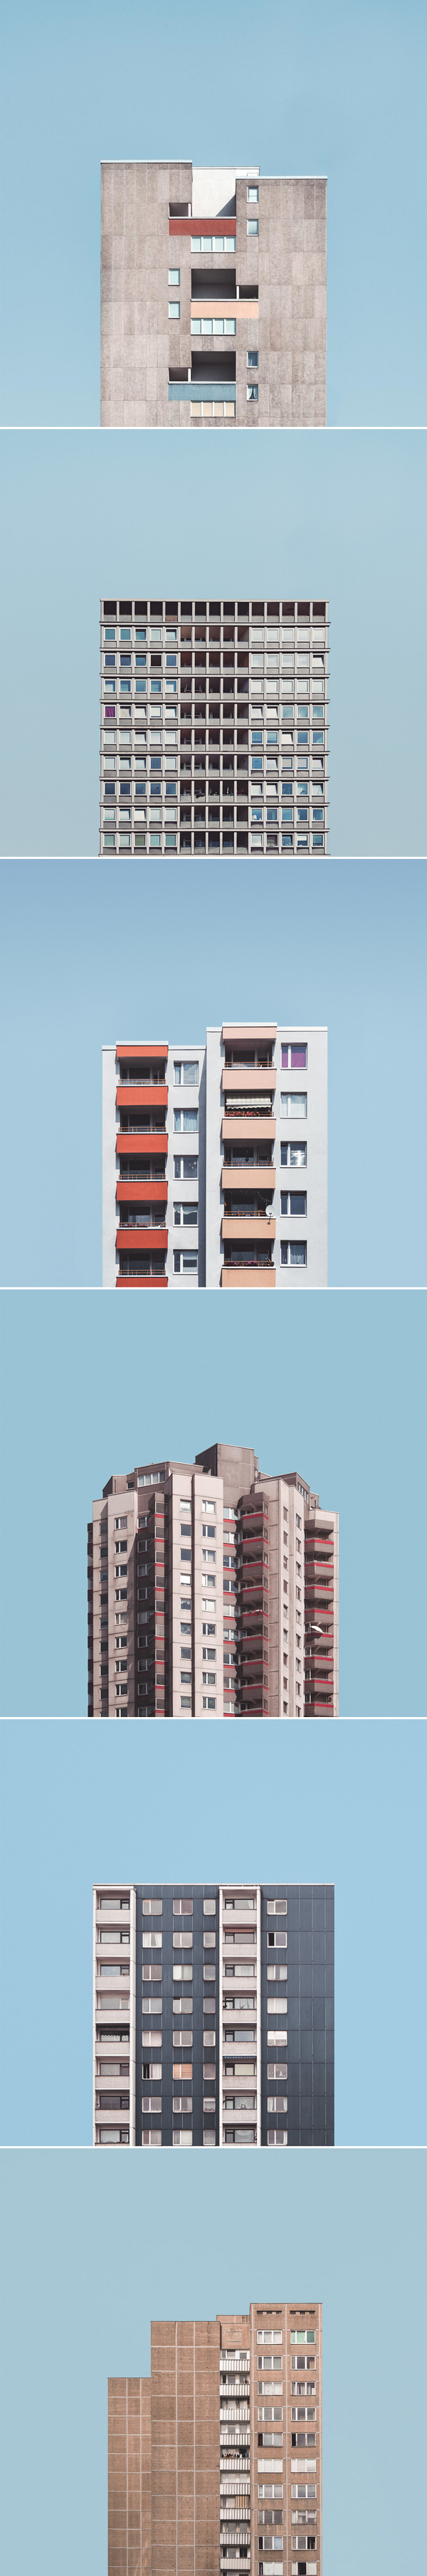 Malte Brandenburg | Stacked